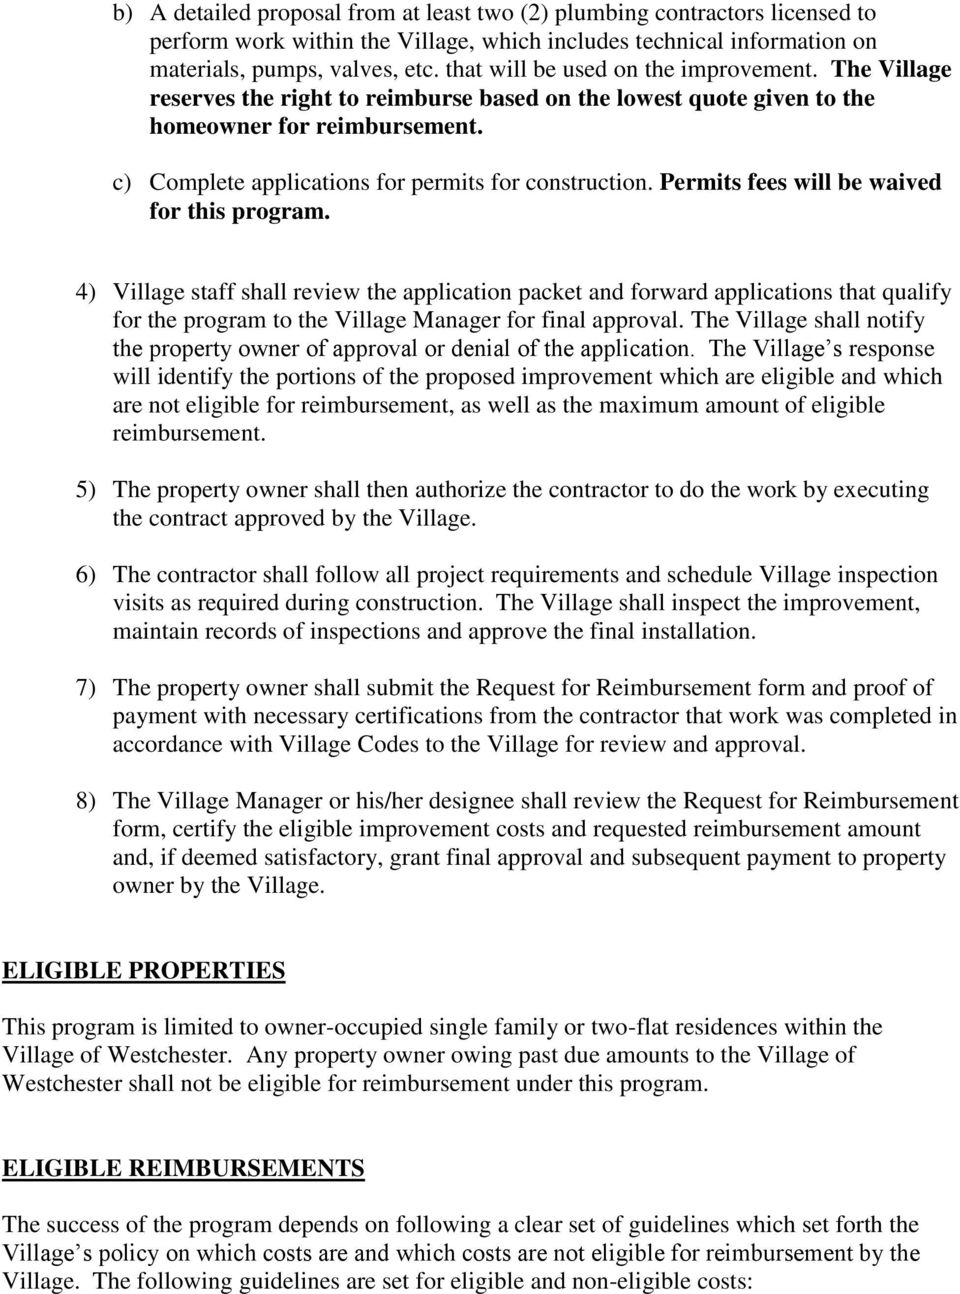 c) Complete applications for permits for construction. Permits fees will be waived for this program.